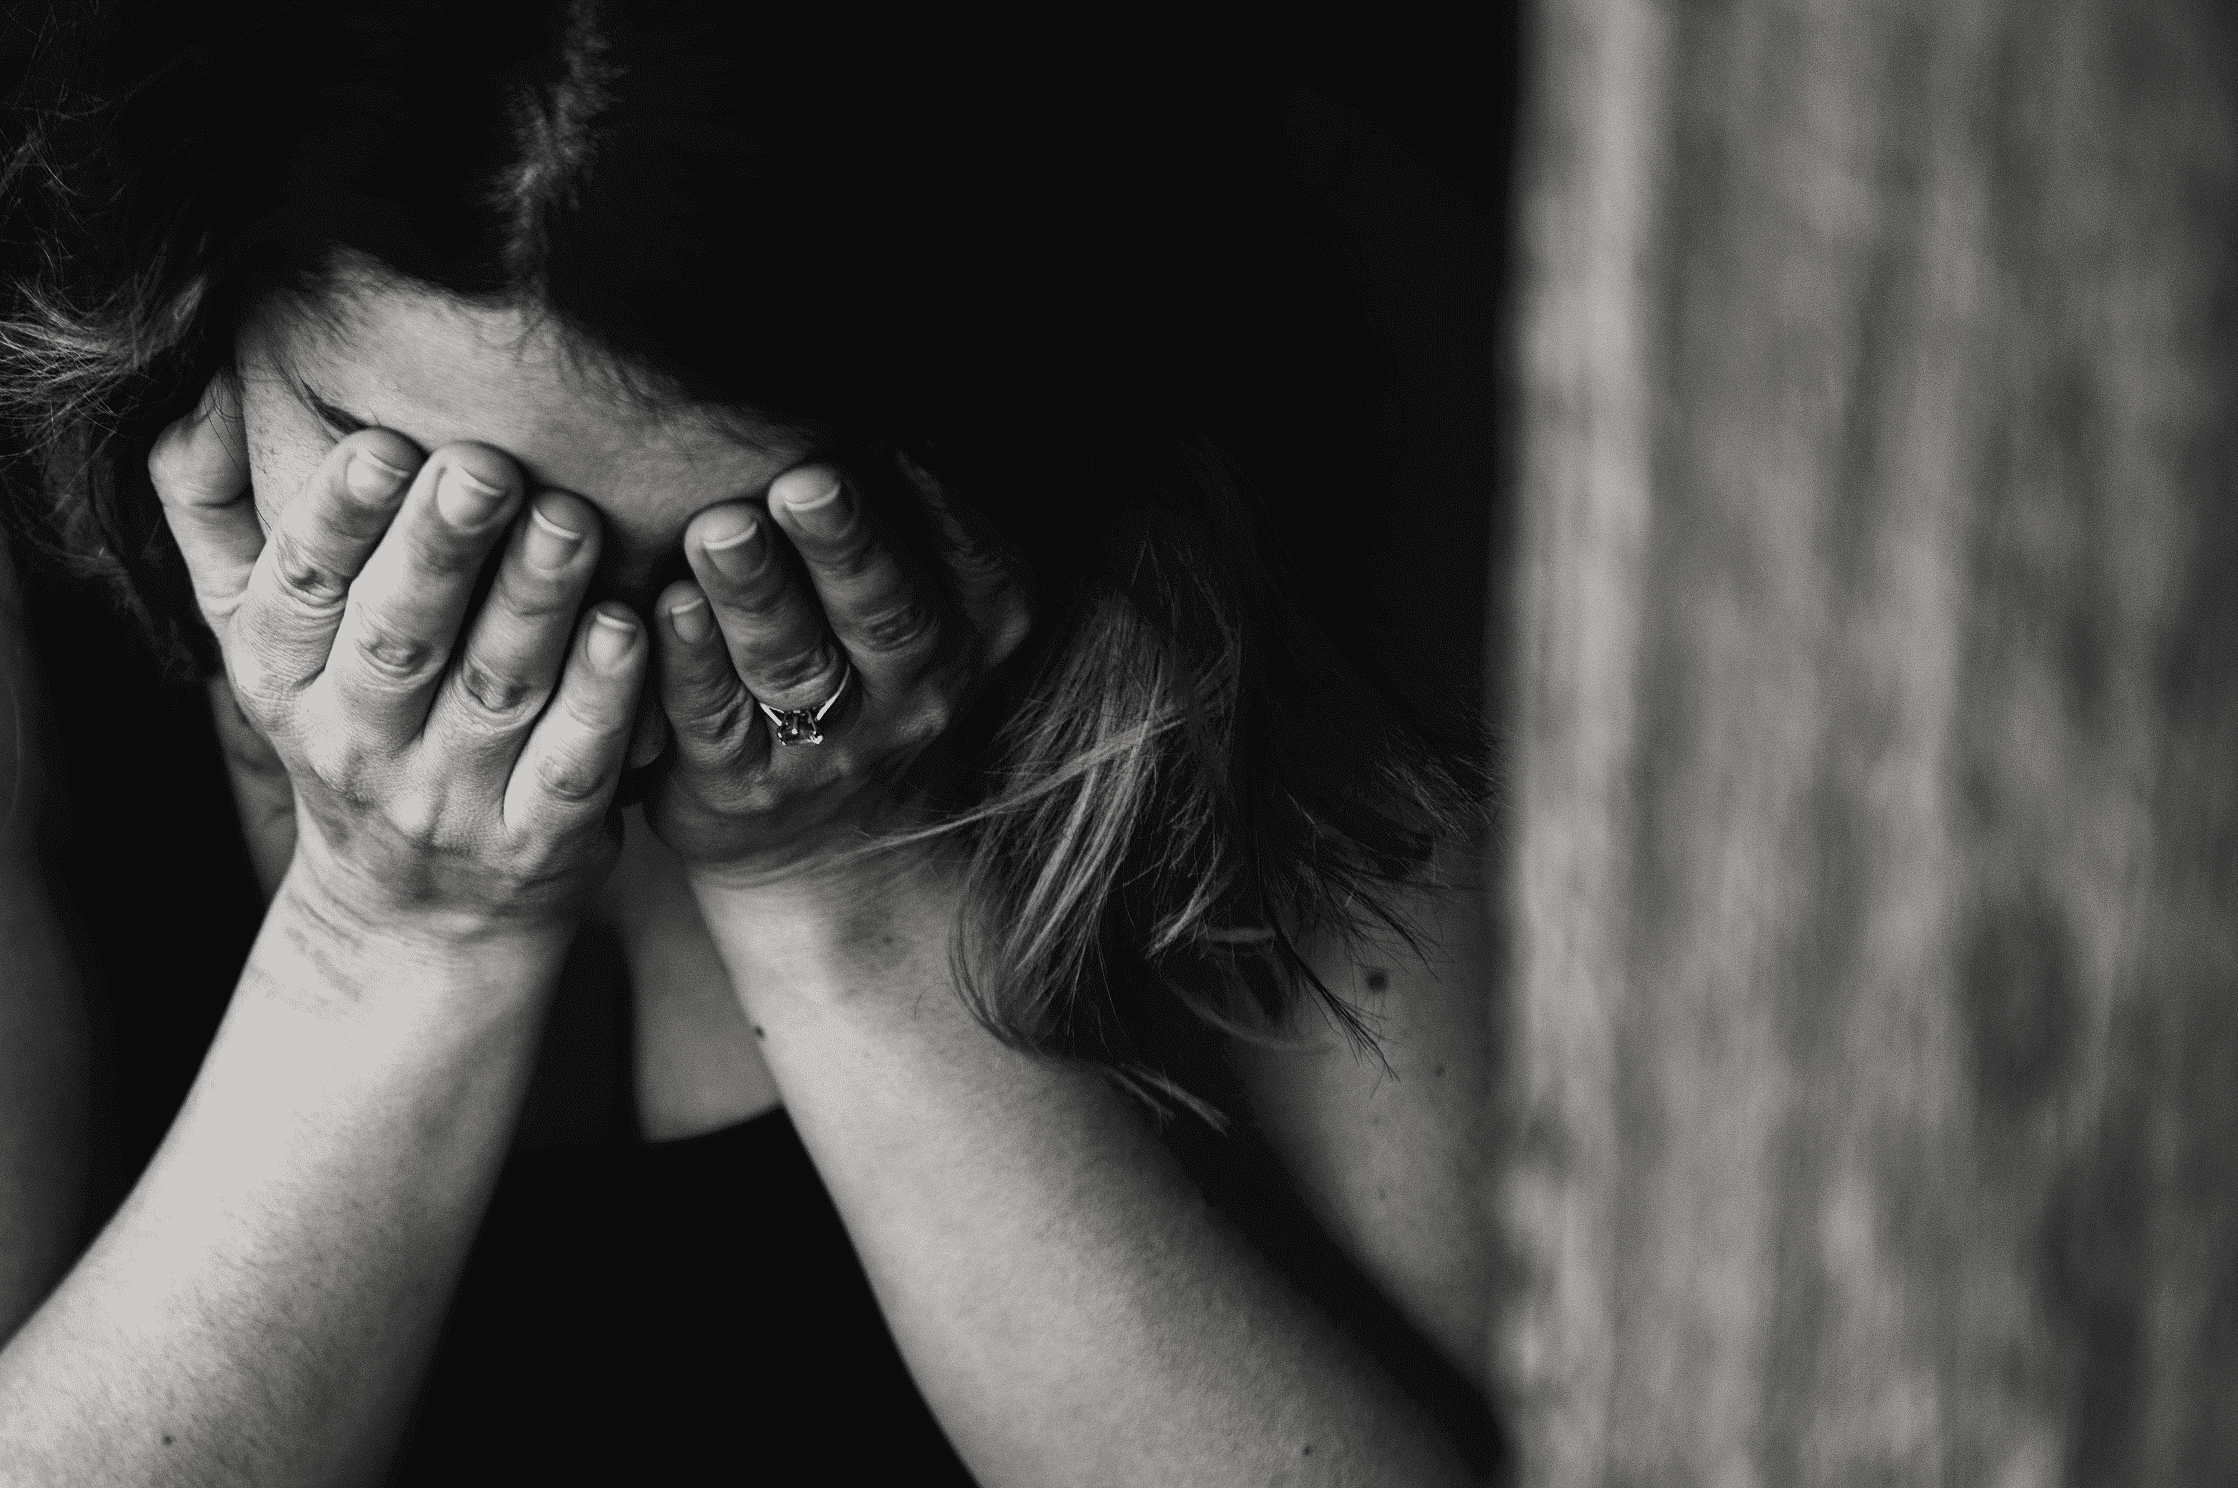 A crying woman. | Source: Pexels